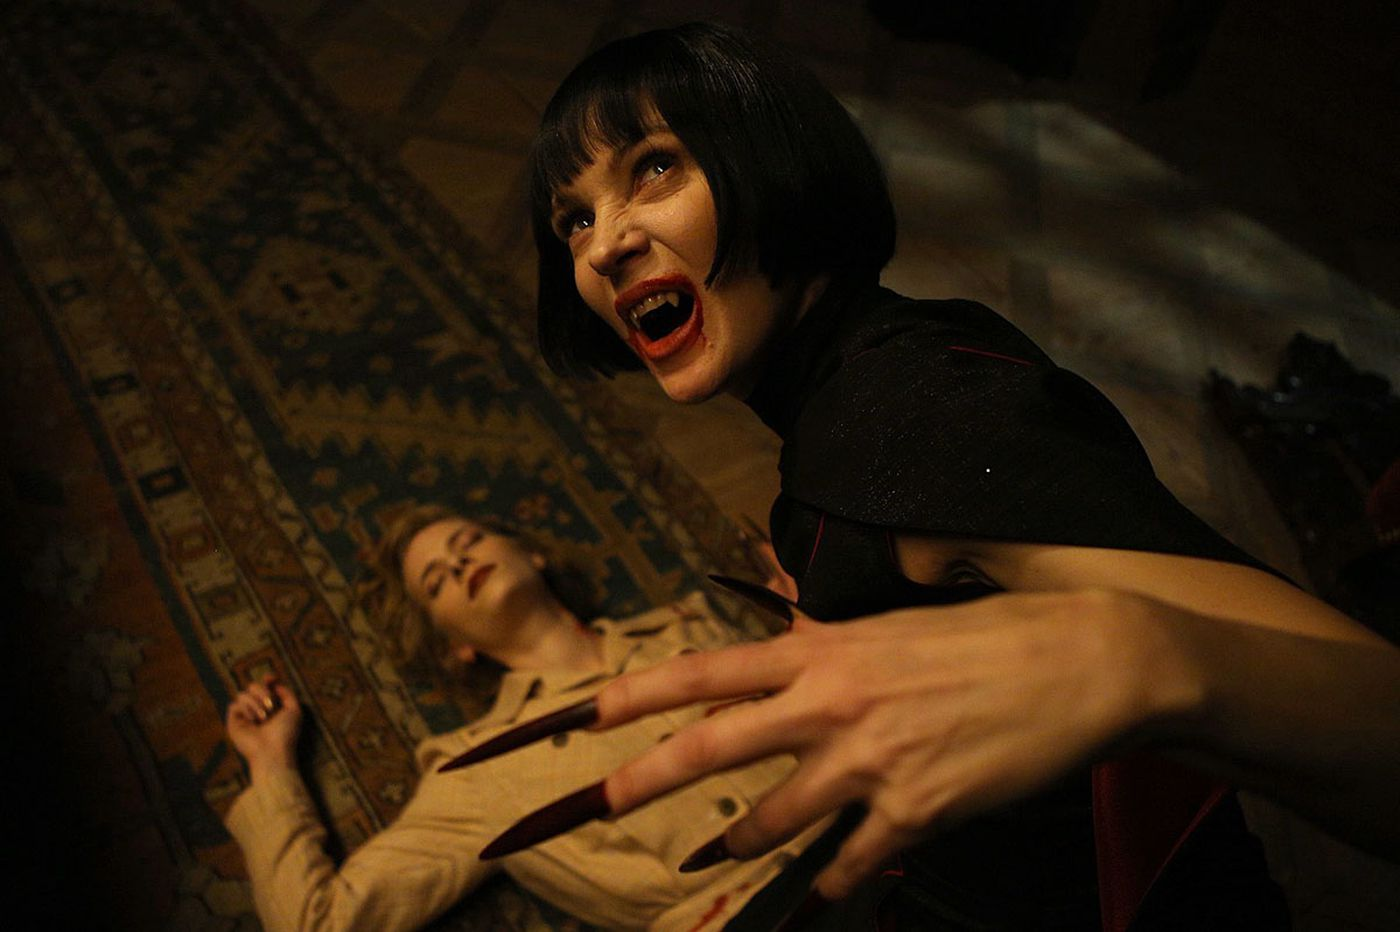 'Therapy for a Vampire': A count hits Freud's couch, comically